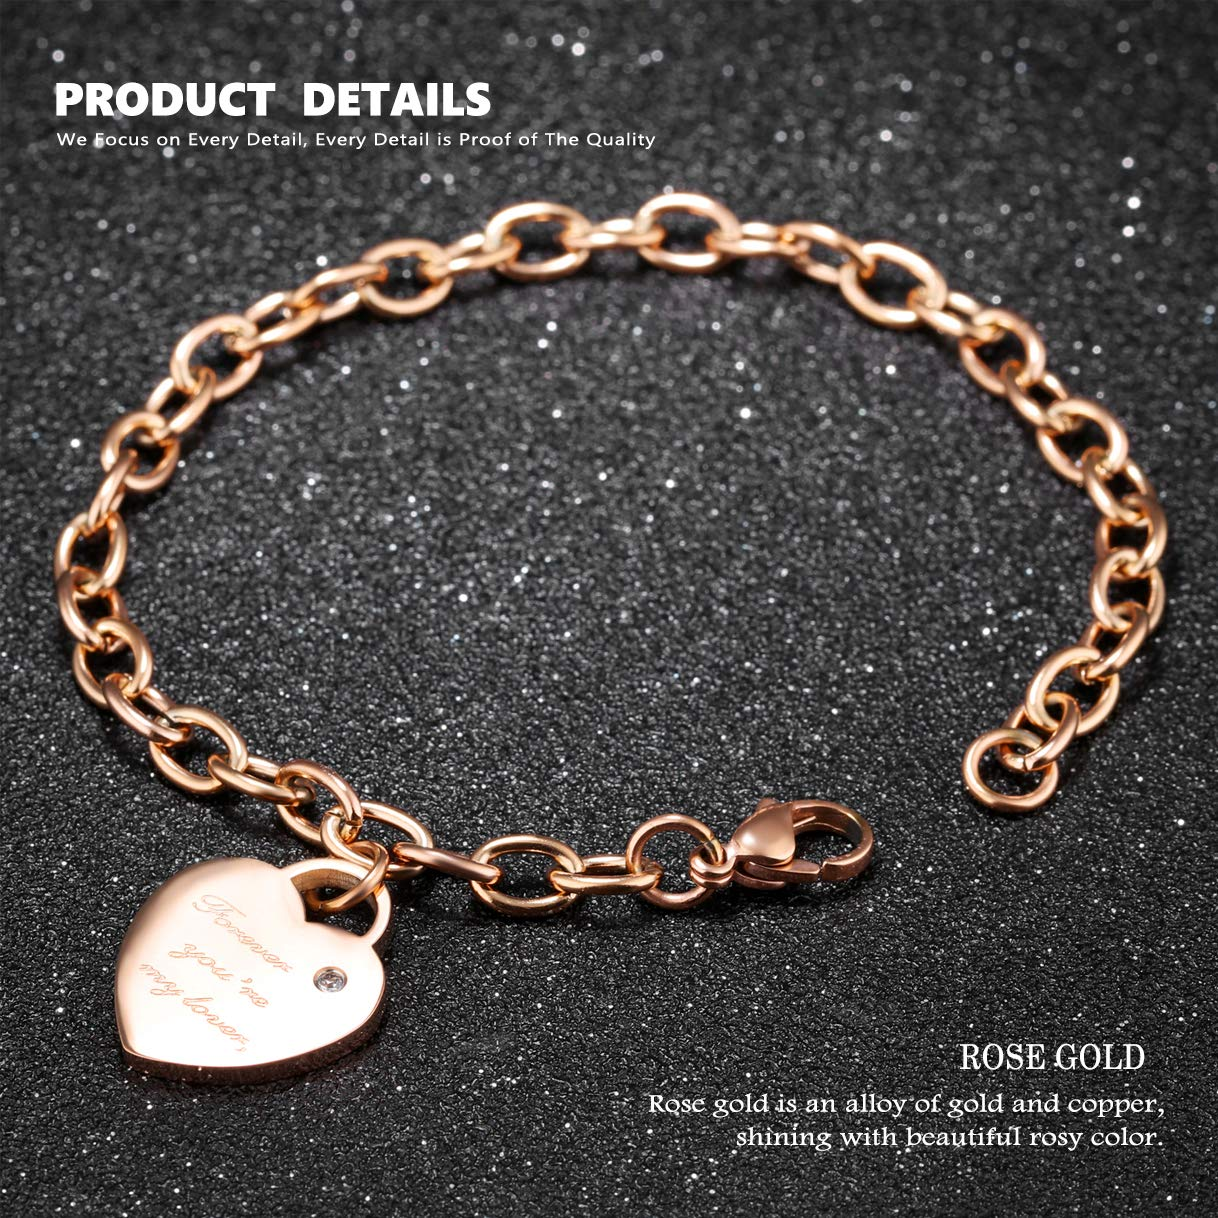 CHARMFAME Rose Gold Plated Stainless Steel Engraved Bangle CZ Cross Bracelet Fashion Jewelry for Women /& Girls